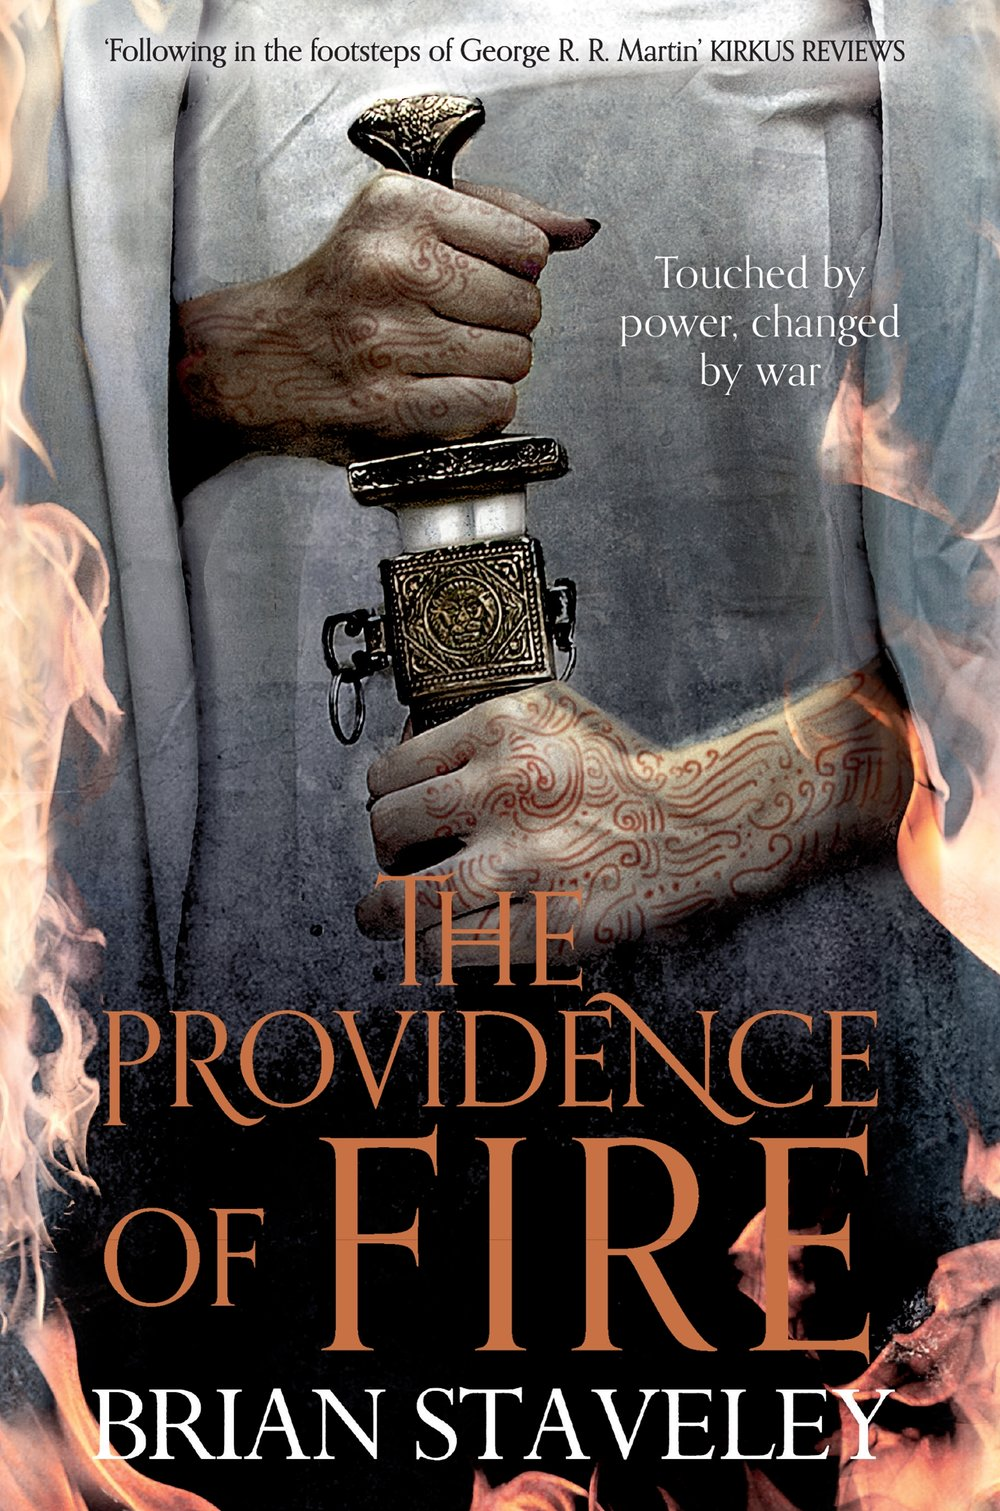 9781447235811The Providence of Fire.jpg